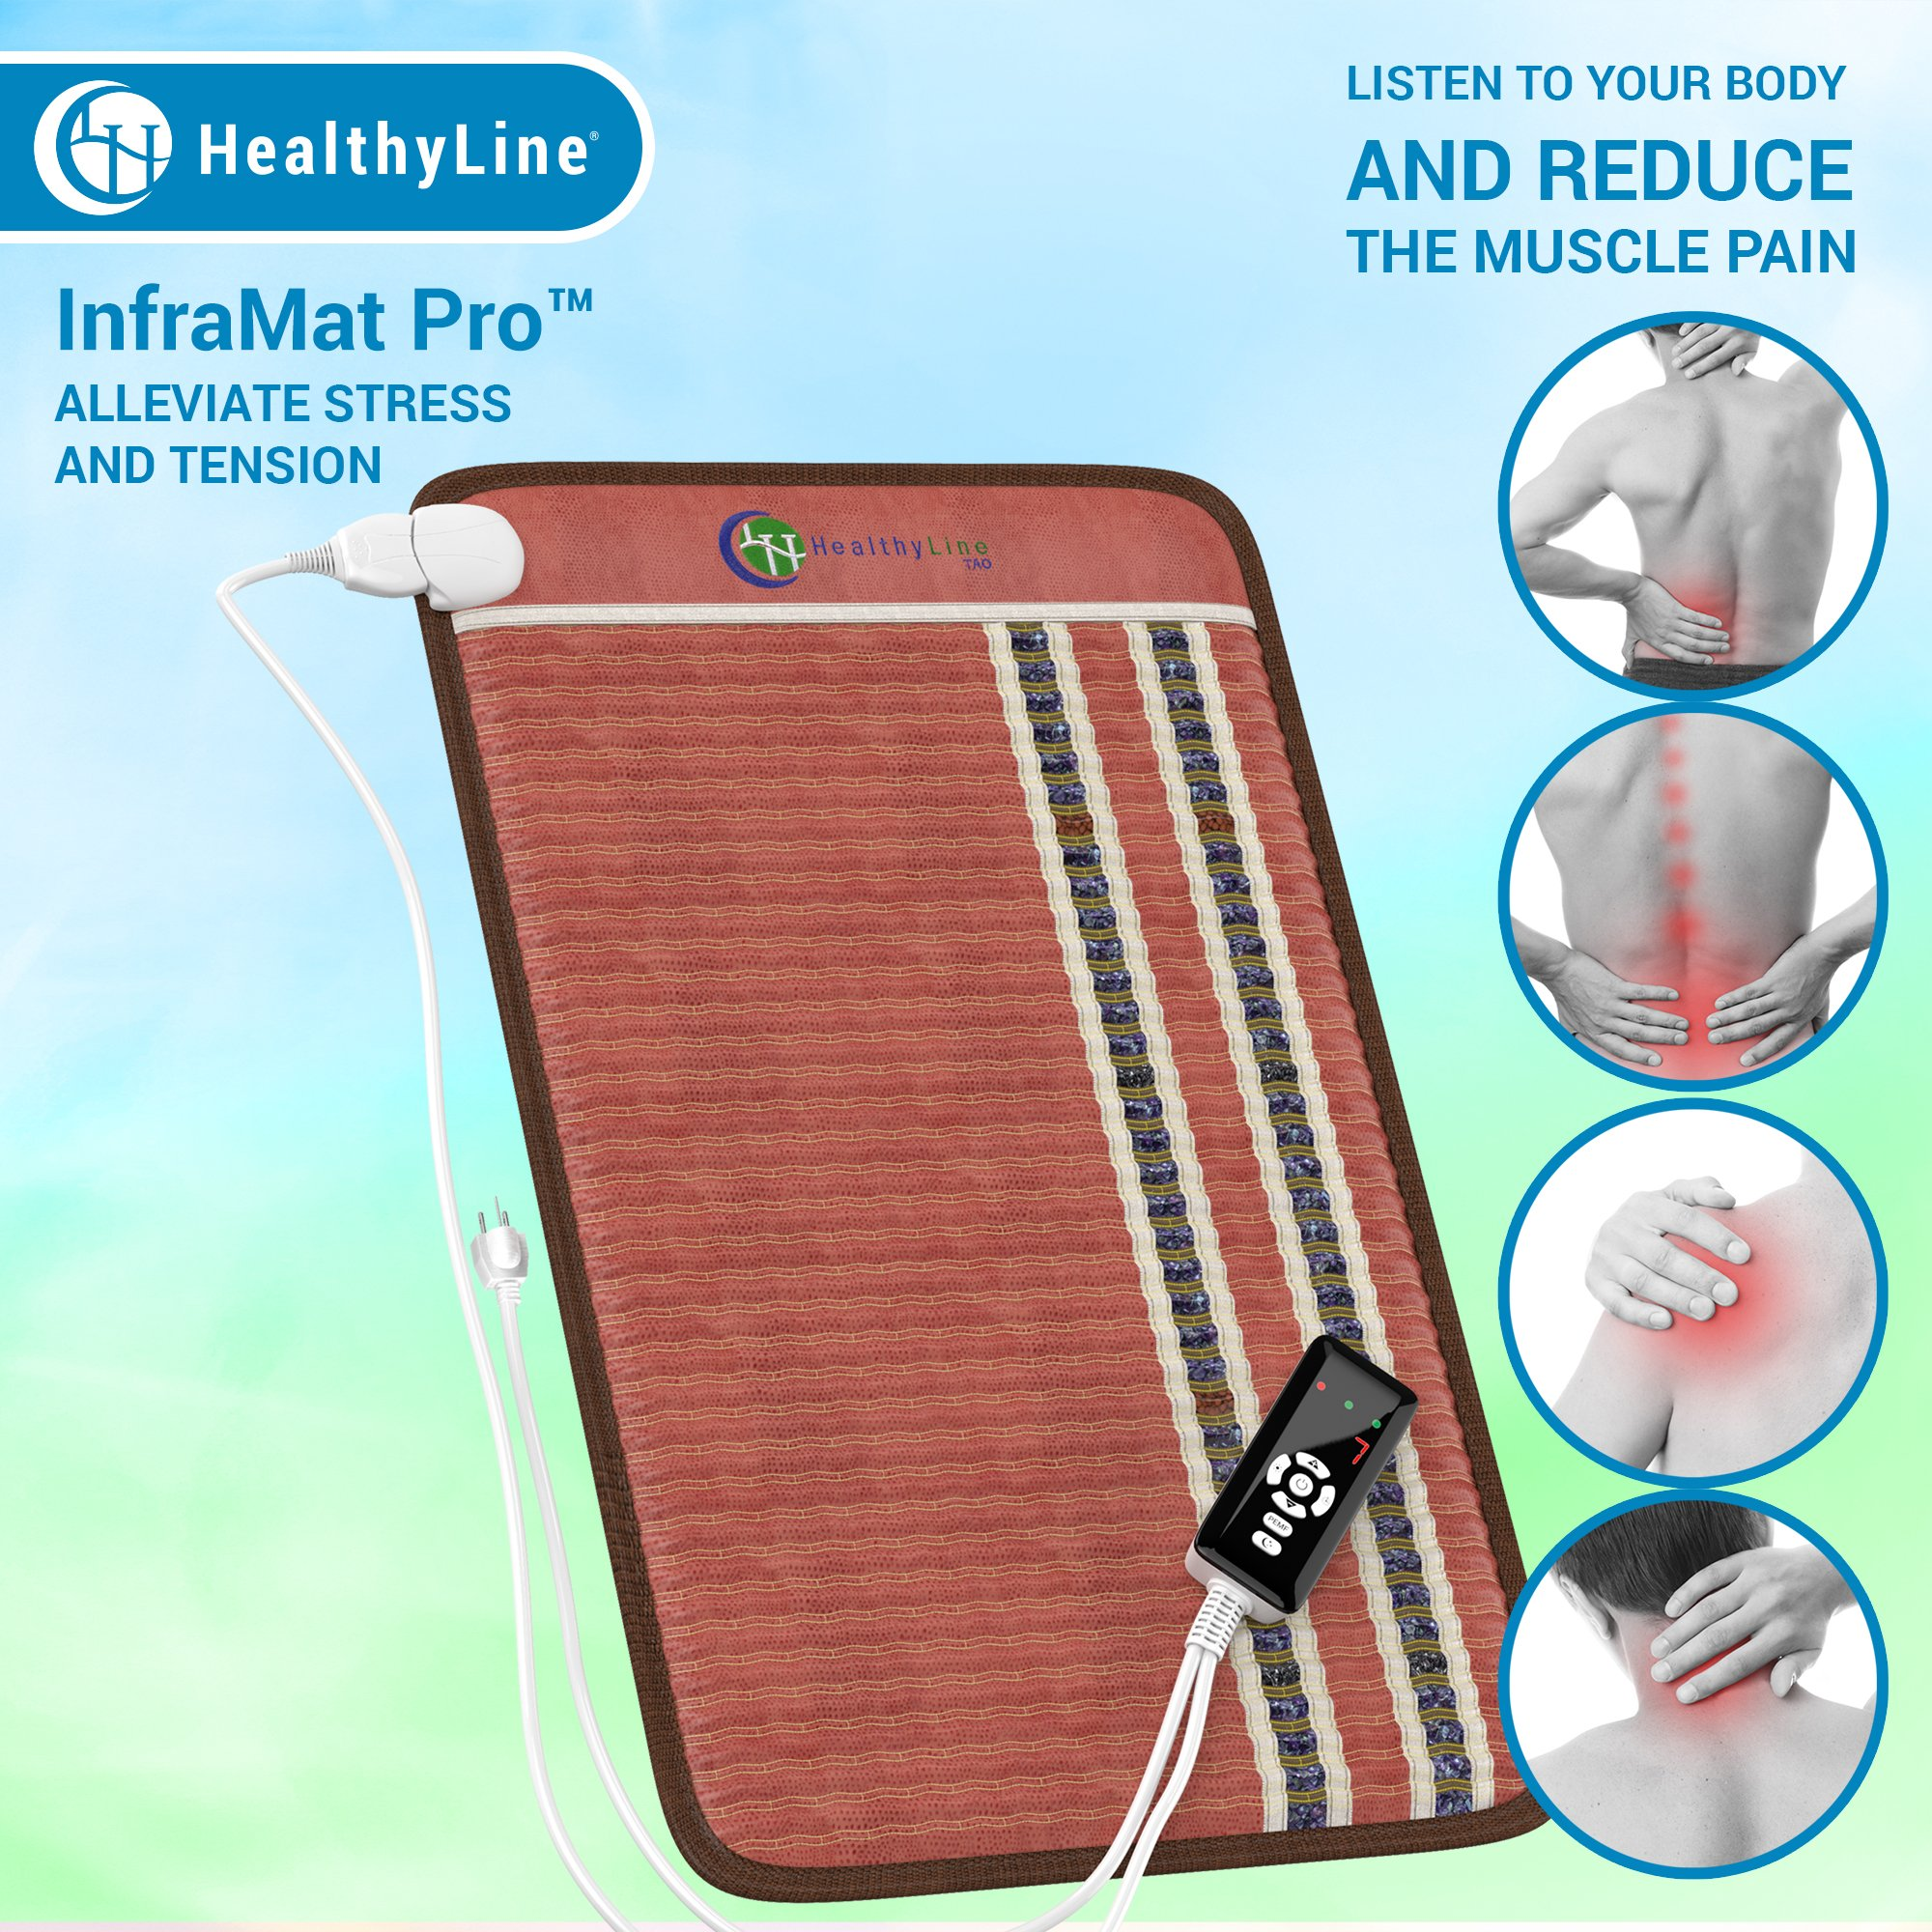 HealthyLine Infrared Heating Pad 32''x20'' (Firm) |PEMF 7.83Hz Tourmaline, Amethyst & Obsidian Gemstones |US FDA Registered, Comfy & Portable Pad |For Sore Muscles & Aching Joints by HealthyLine